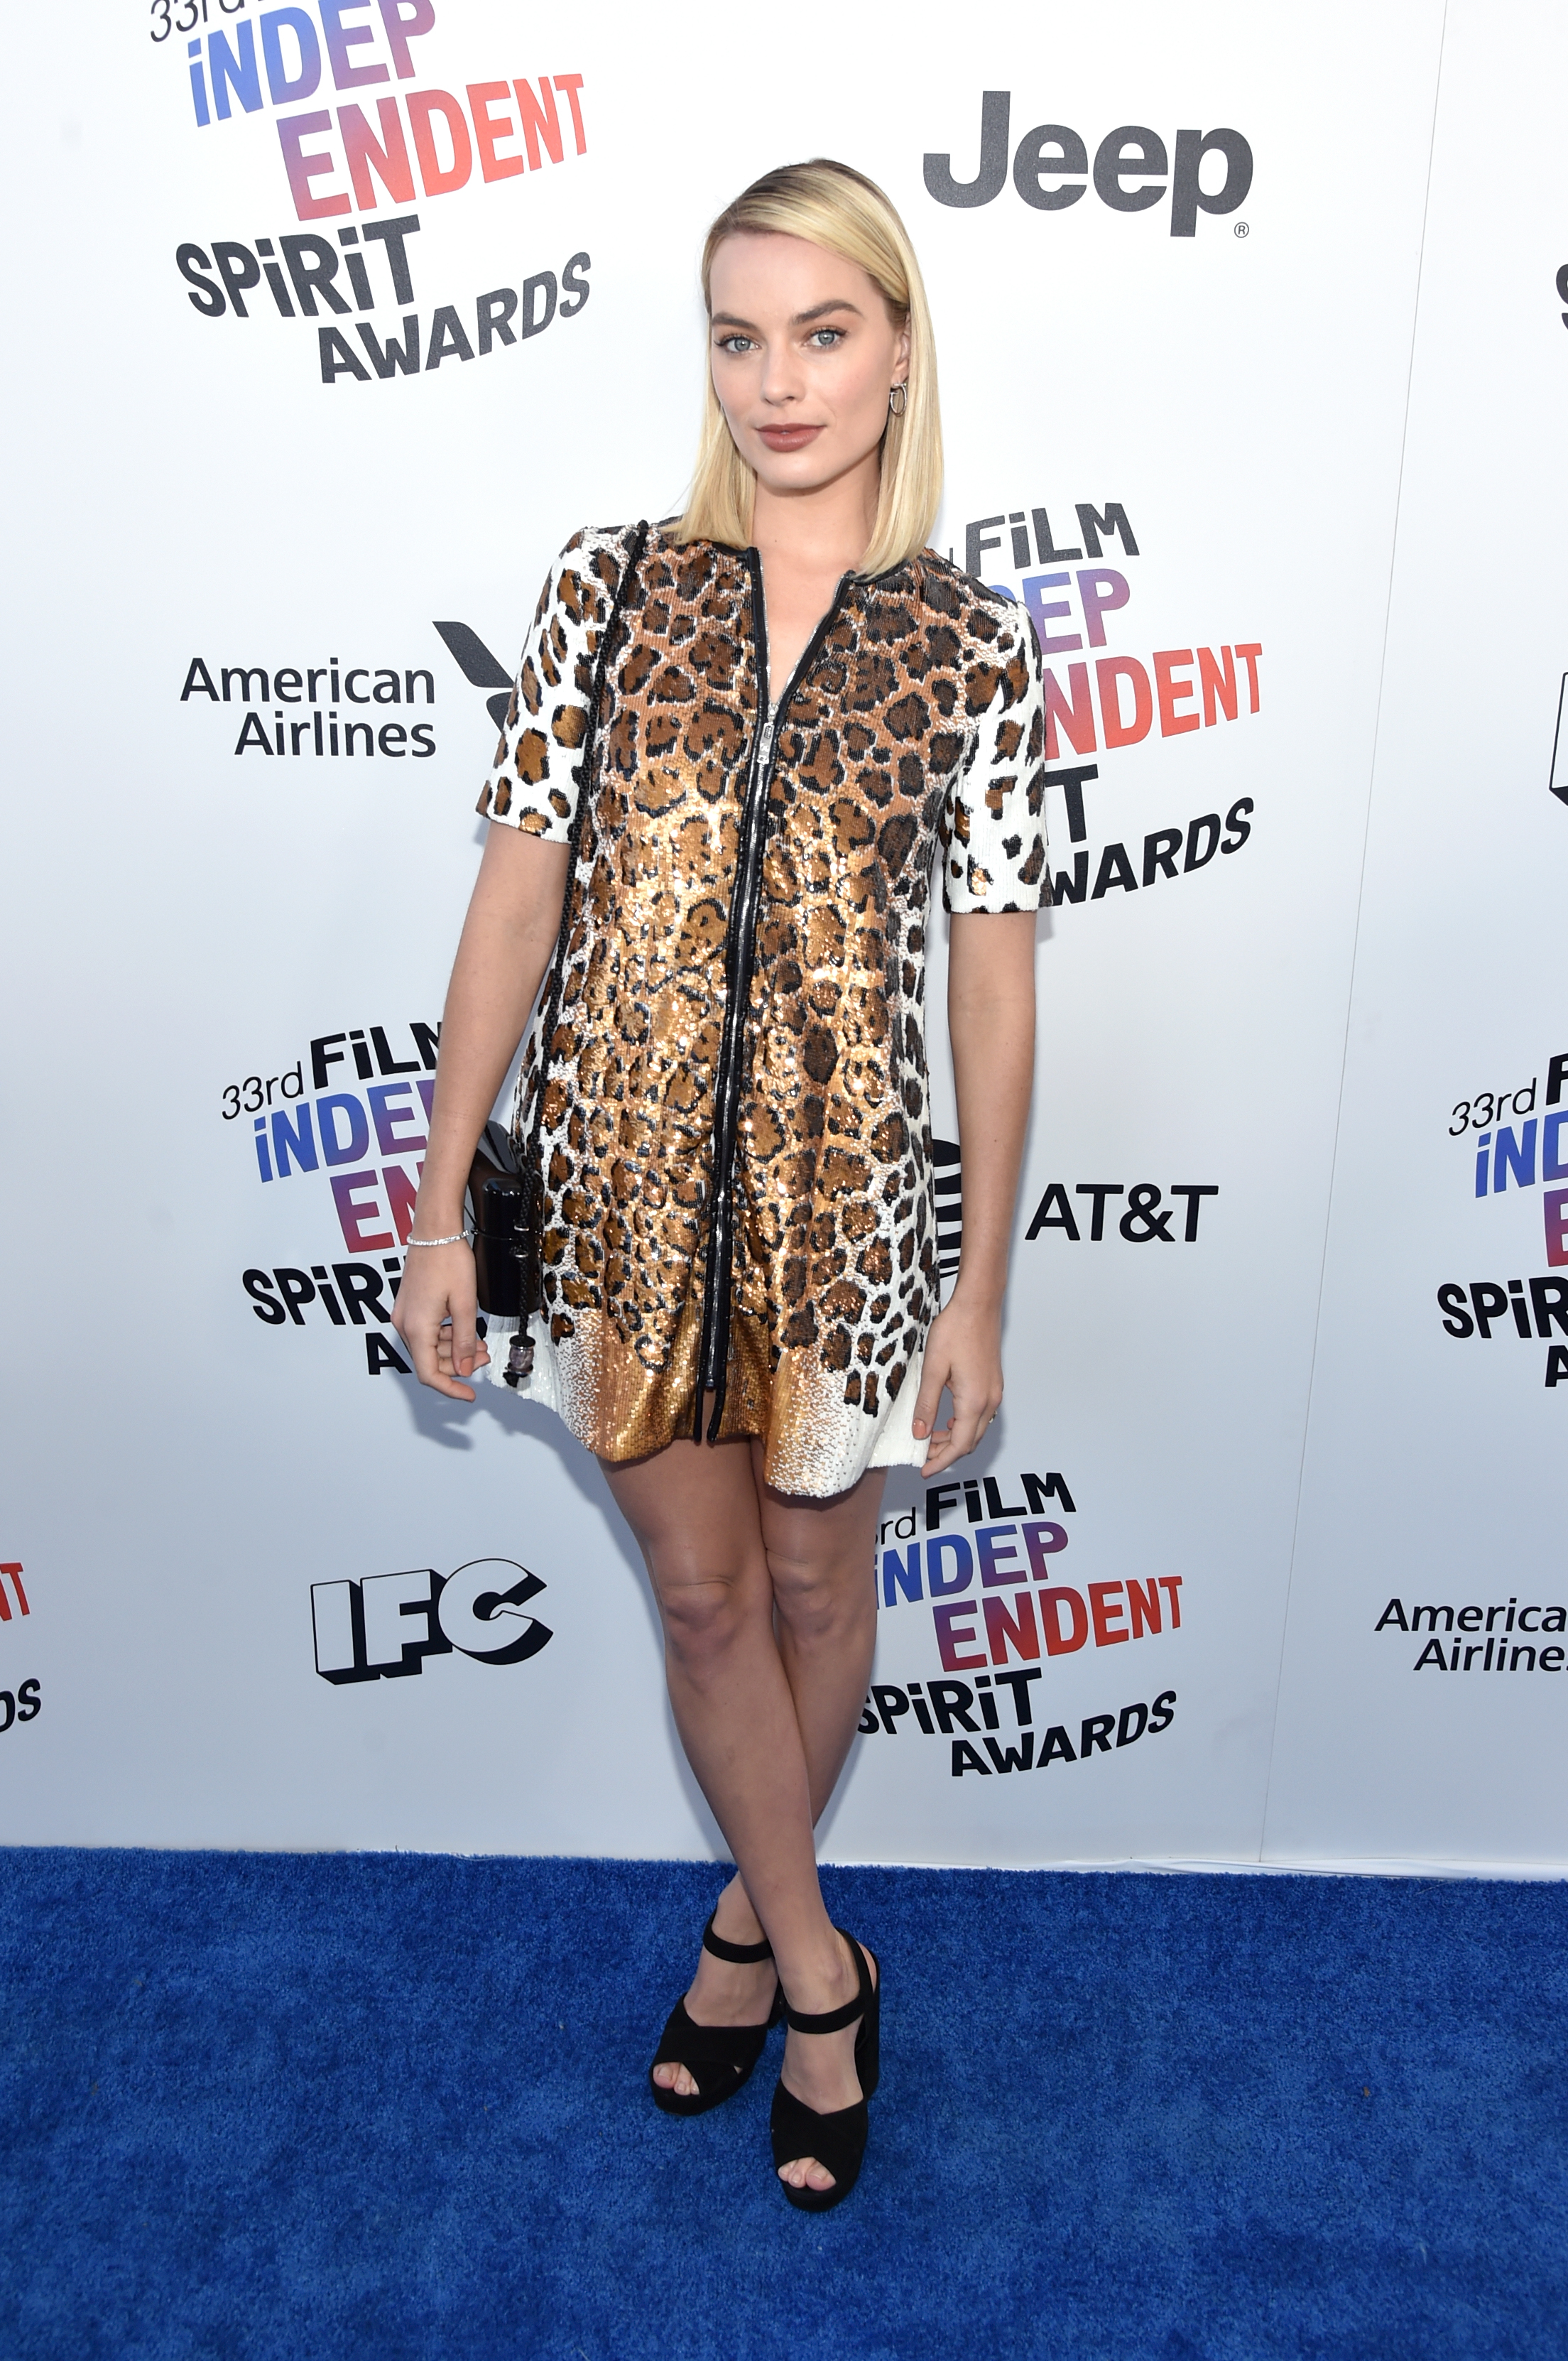 <p>It's the eve of film's night of night's, the Academy Awards. But before the stars pull out all the style stops for the Oscars, the A-listers gathered to celebrate the best in independent film at the 2018 FilmIndependent Spirit Awards in Los Angeles.<br /> <br /> In a rather bold move, Margot Robbie ditched the traditional full length gown for a Louis Vuitton mini-dress, while Amanda Seyfriedstunned in a cut-out Alexander McQueen gown.</p> <p>Click through to see the A-listers who brought their A-game...</p>